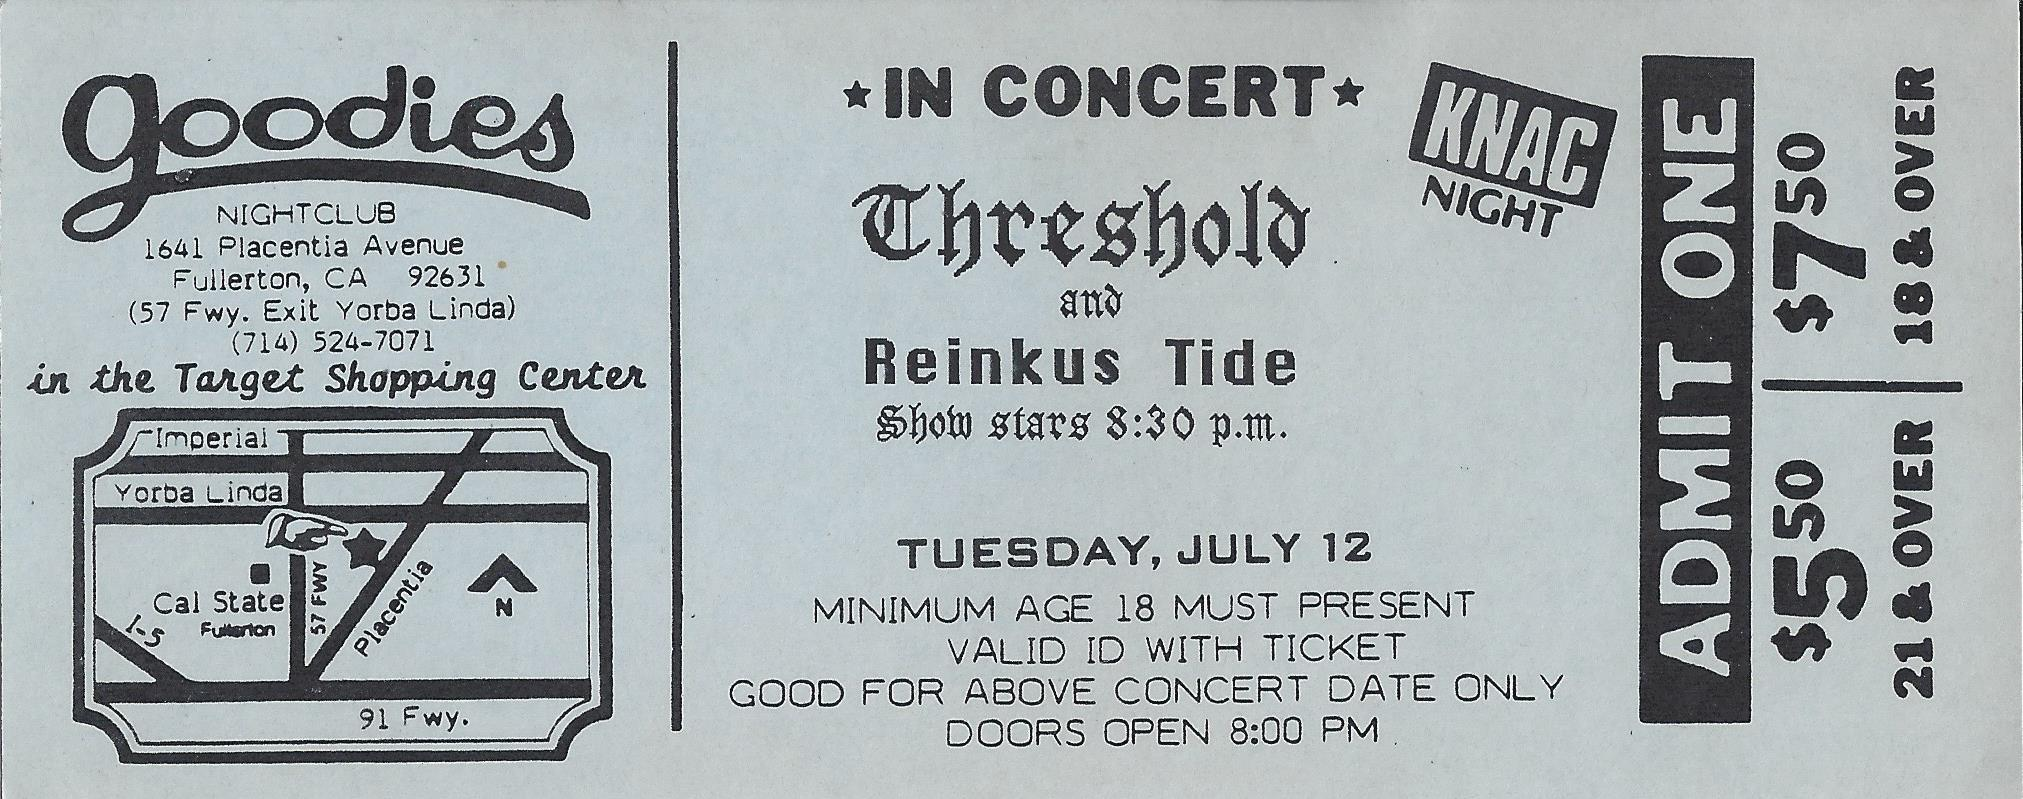 dresden-threshold_gig_tickets_from_goodies_1988.jpg